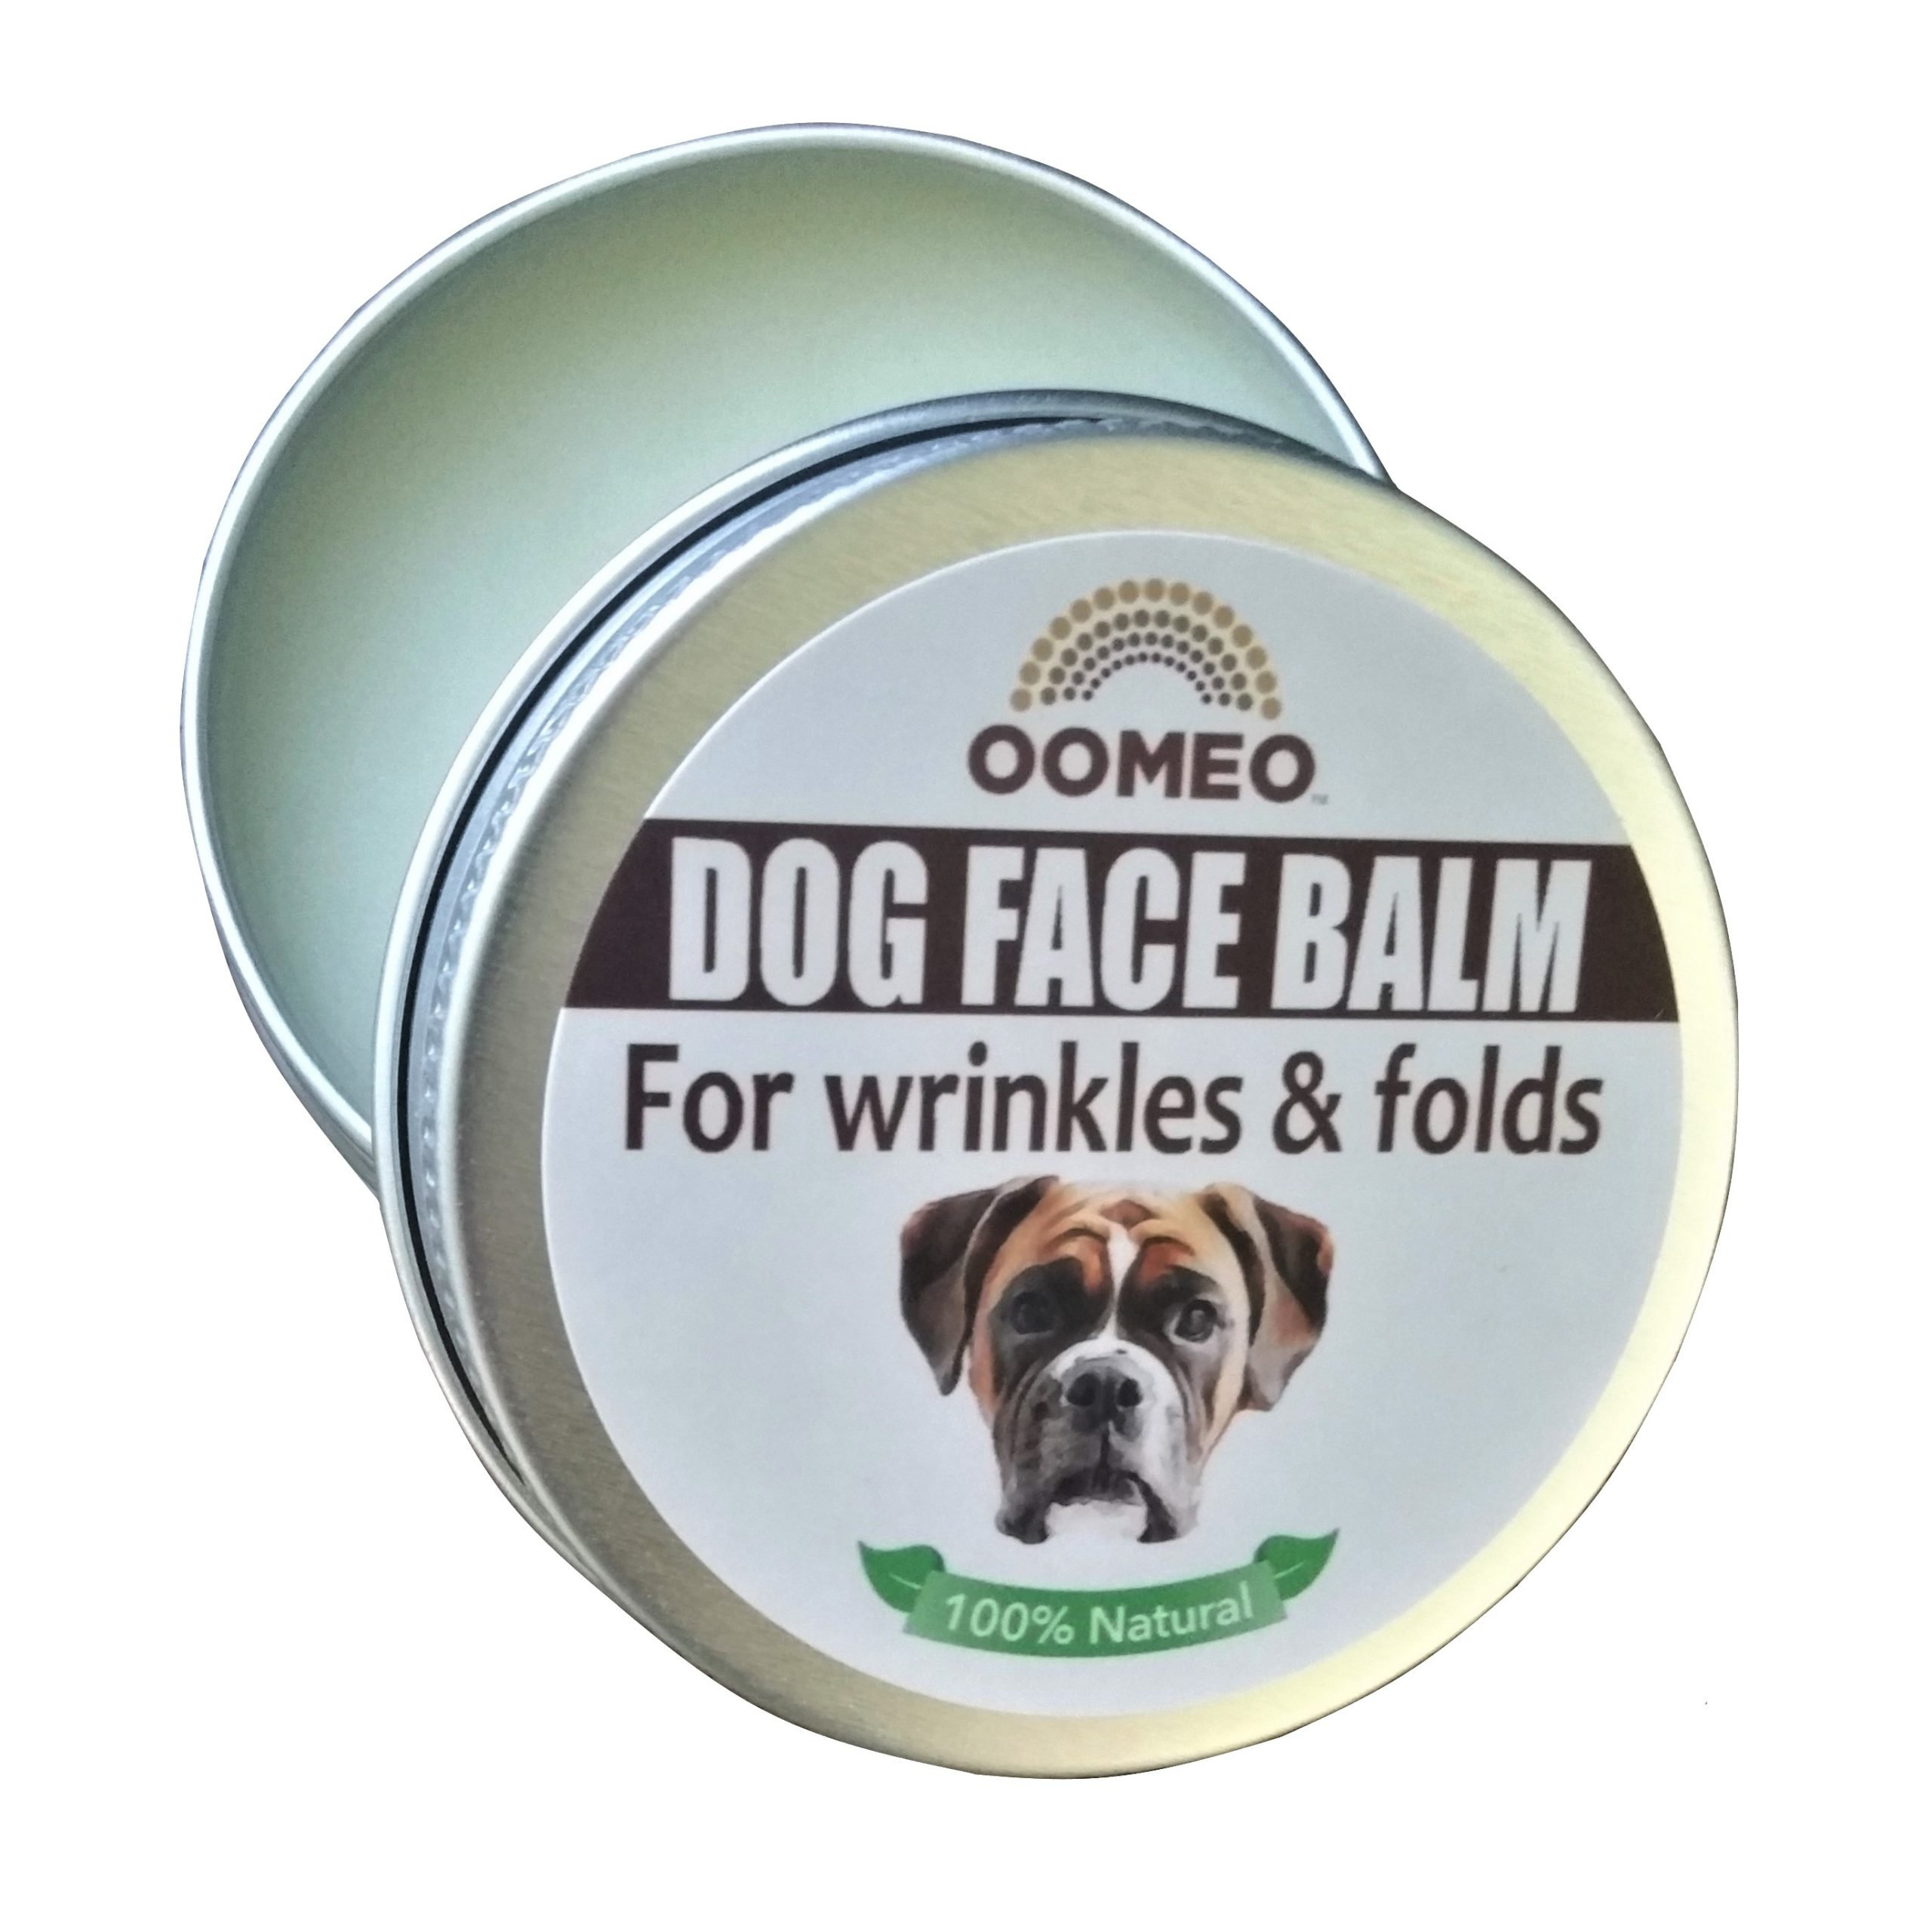 Wholesale dog face balm (30ml)